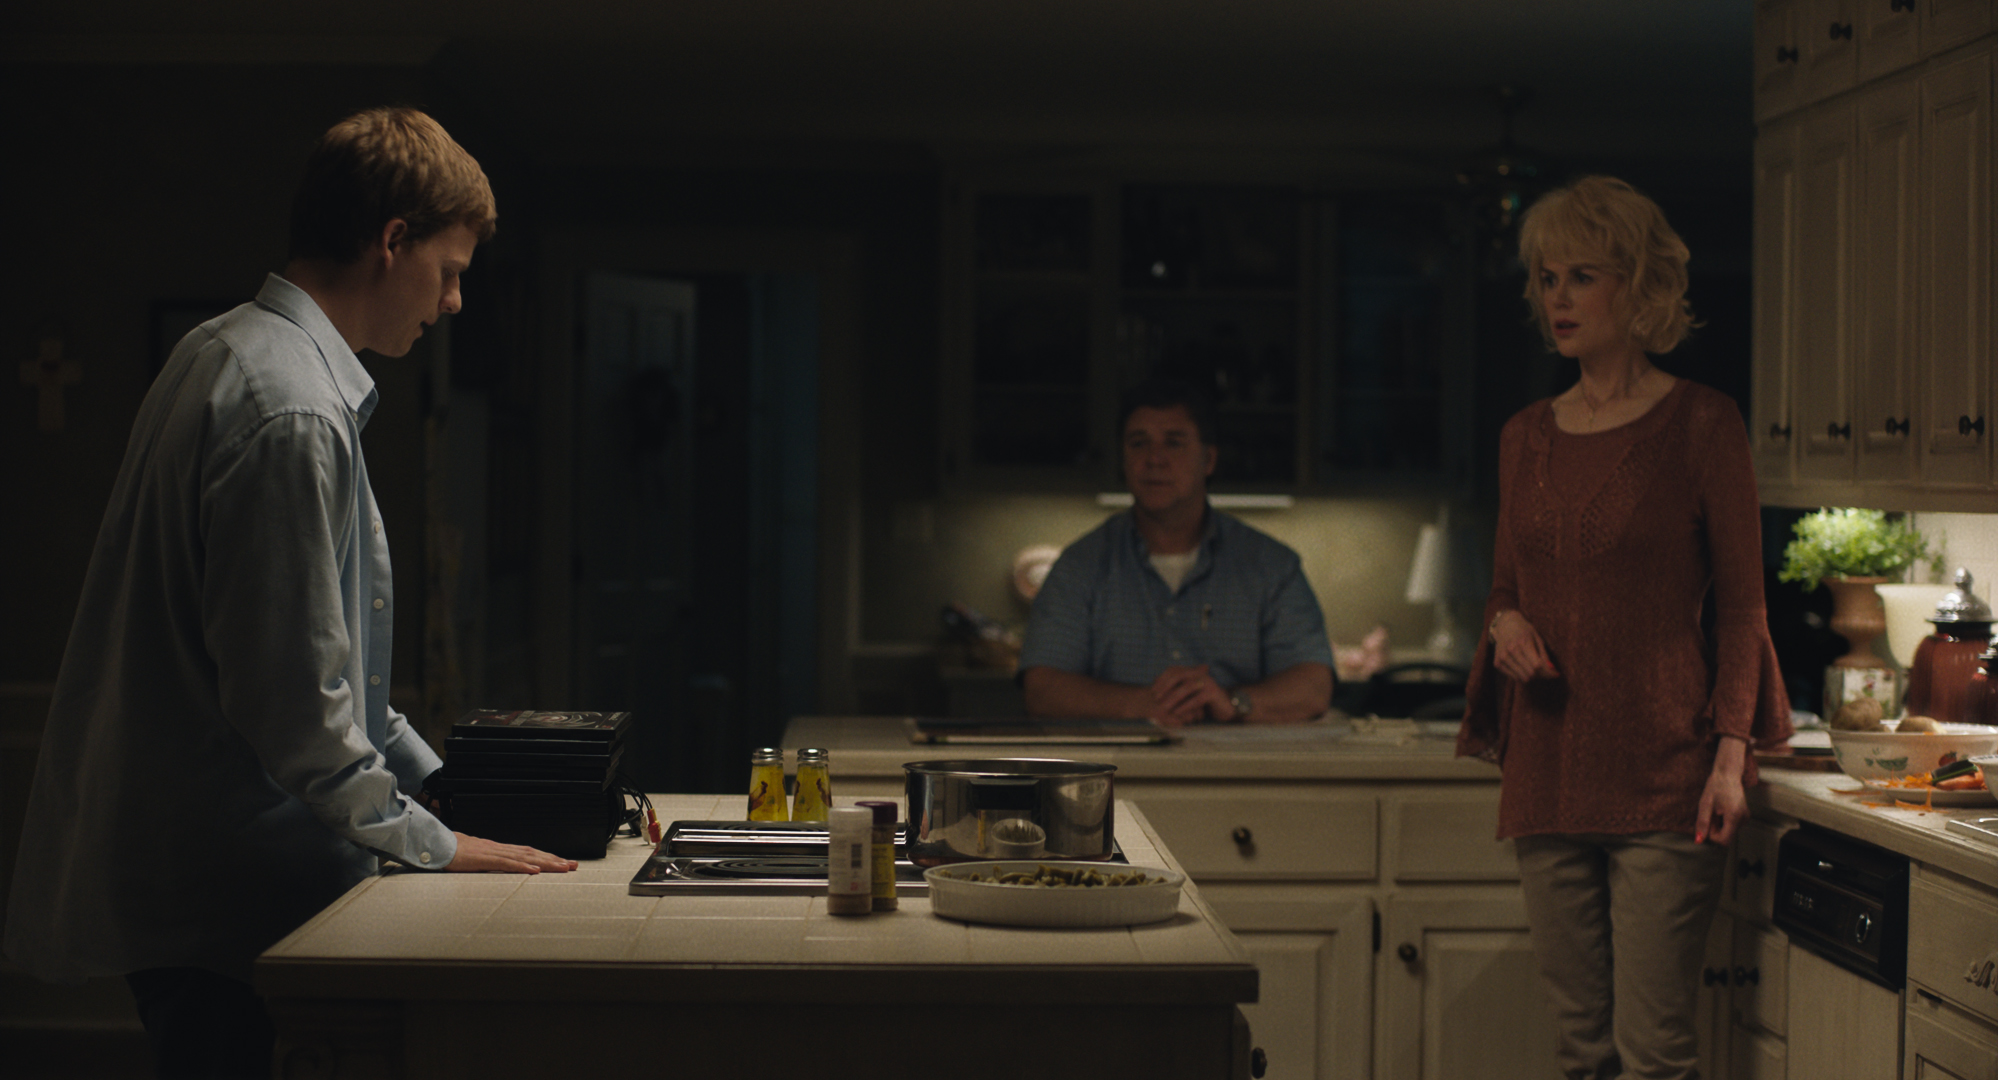 Lucas Hedges stars as 'Jared' with Russell Crowe and Nicole Kidman as his parents 'Marshall' and 'Nancy' in Joel Edgerton's 'BOY ERASED', a Focus Features release. (Credit: Focus Features)